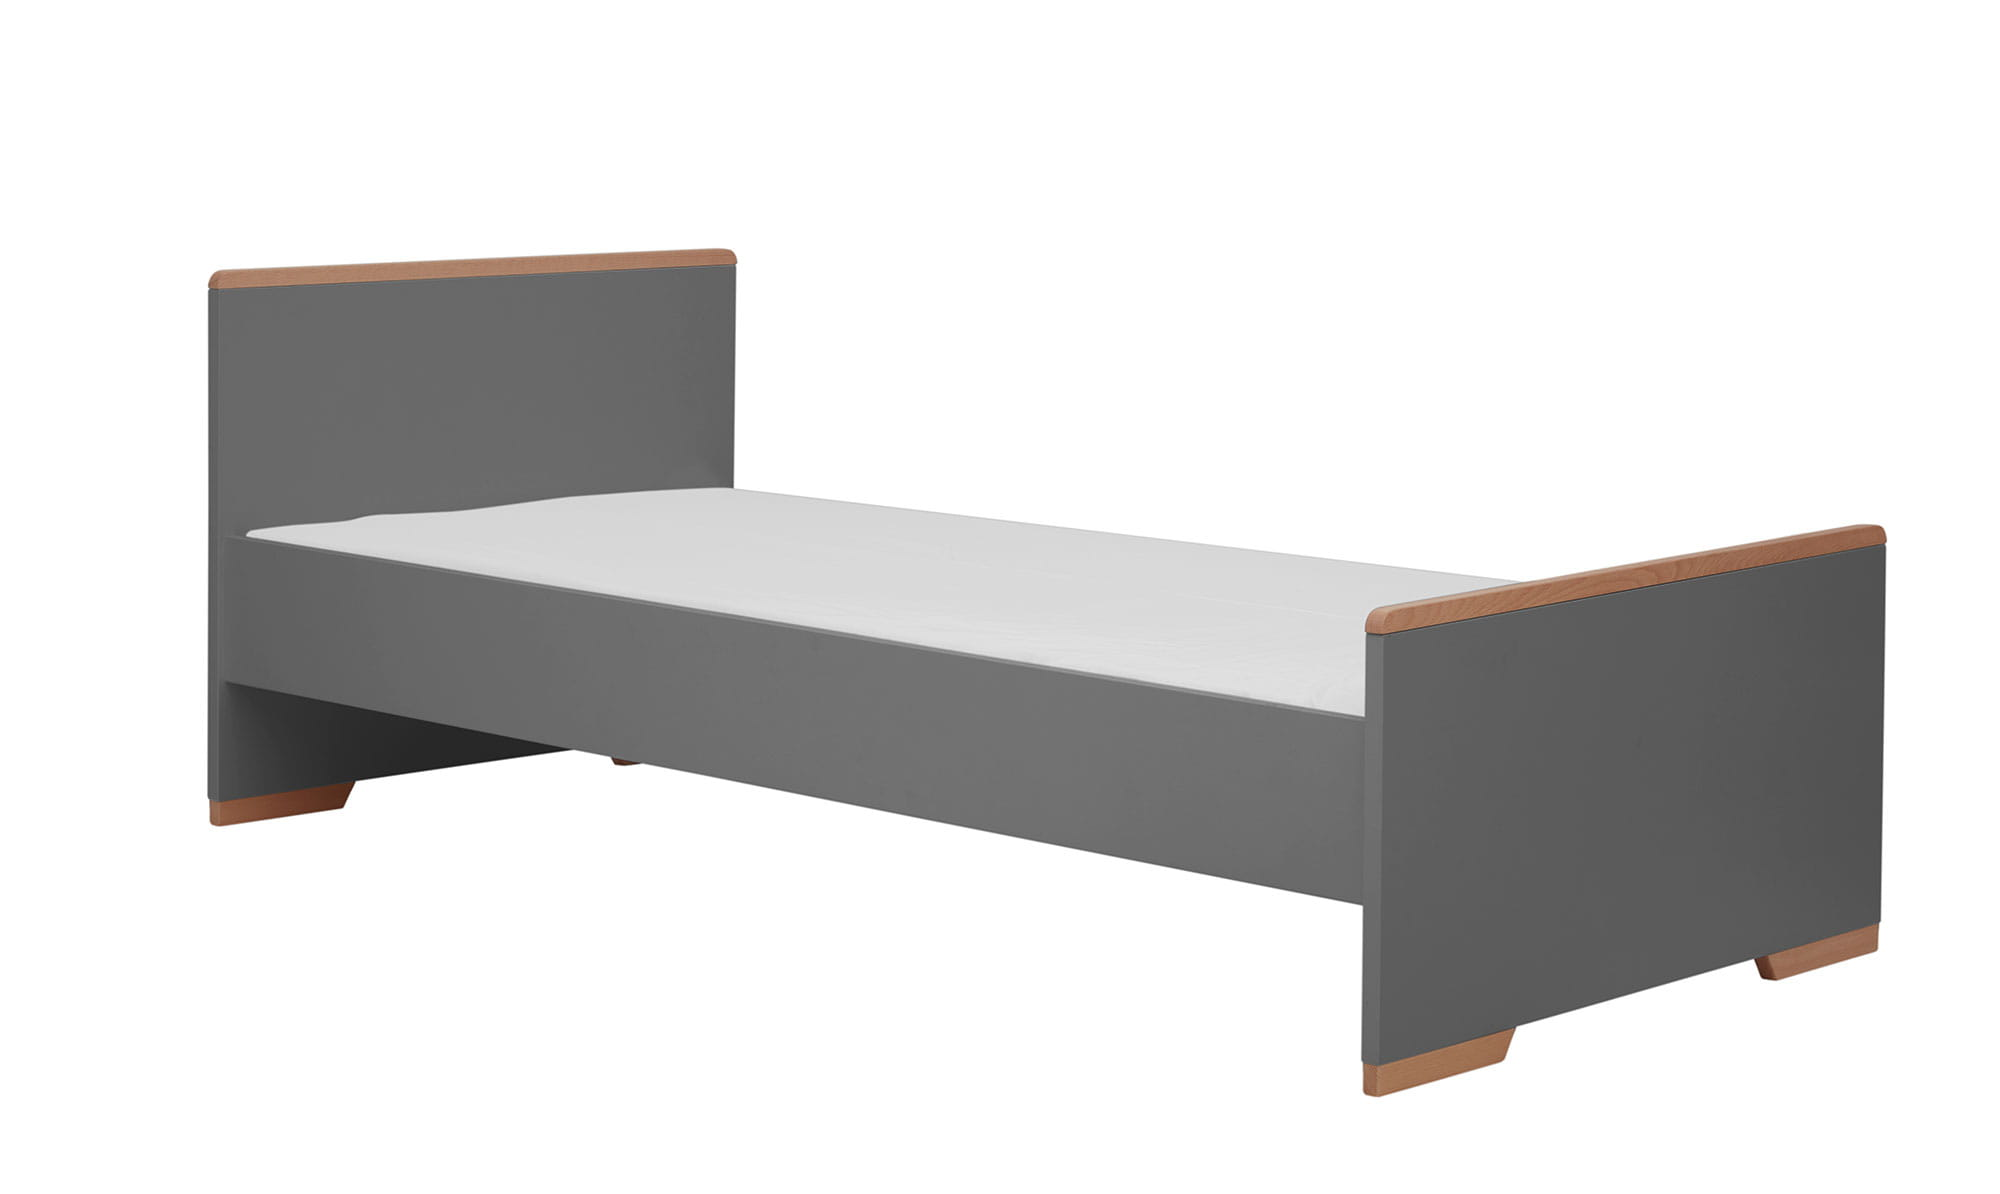 Snap_bed200x90_dark_grey_1.jpg